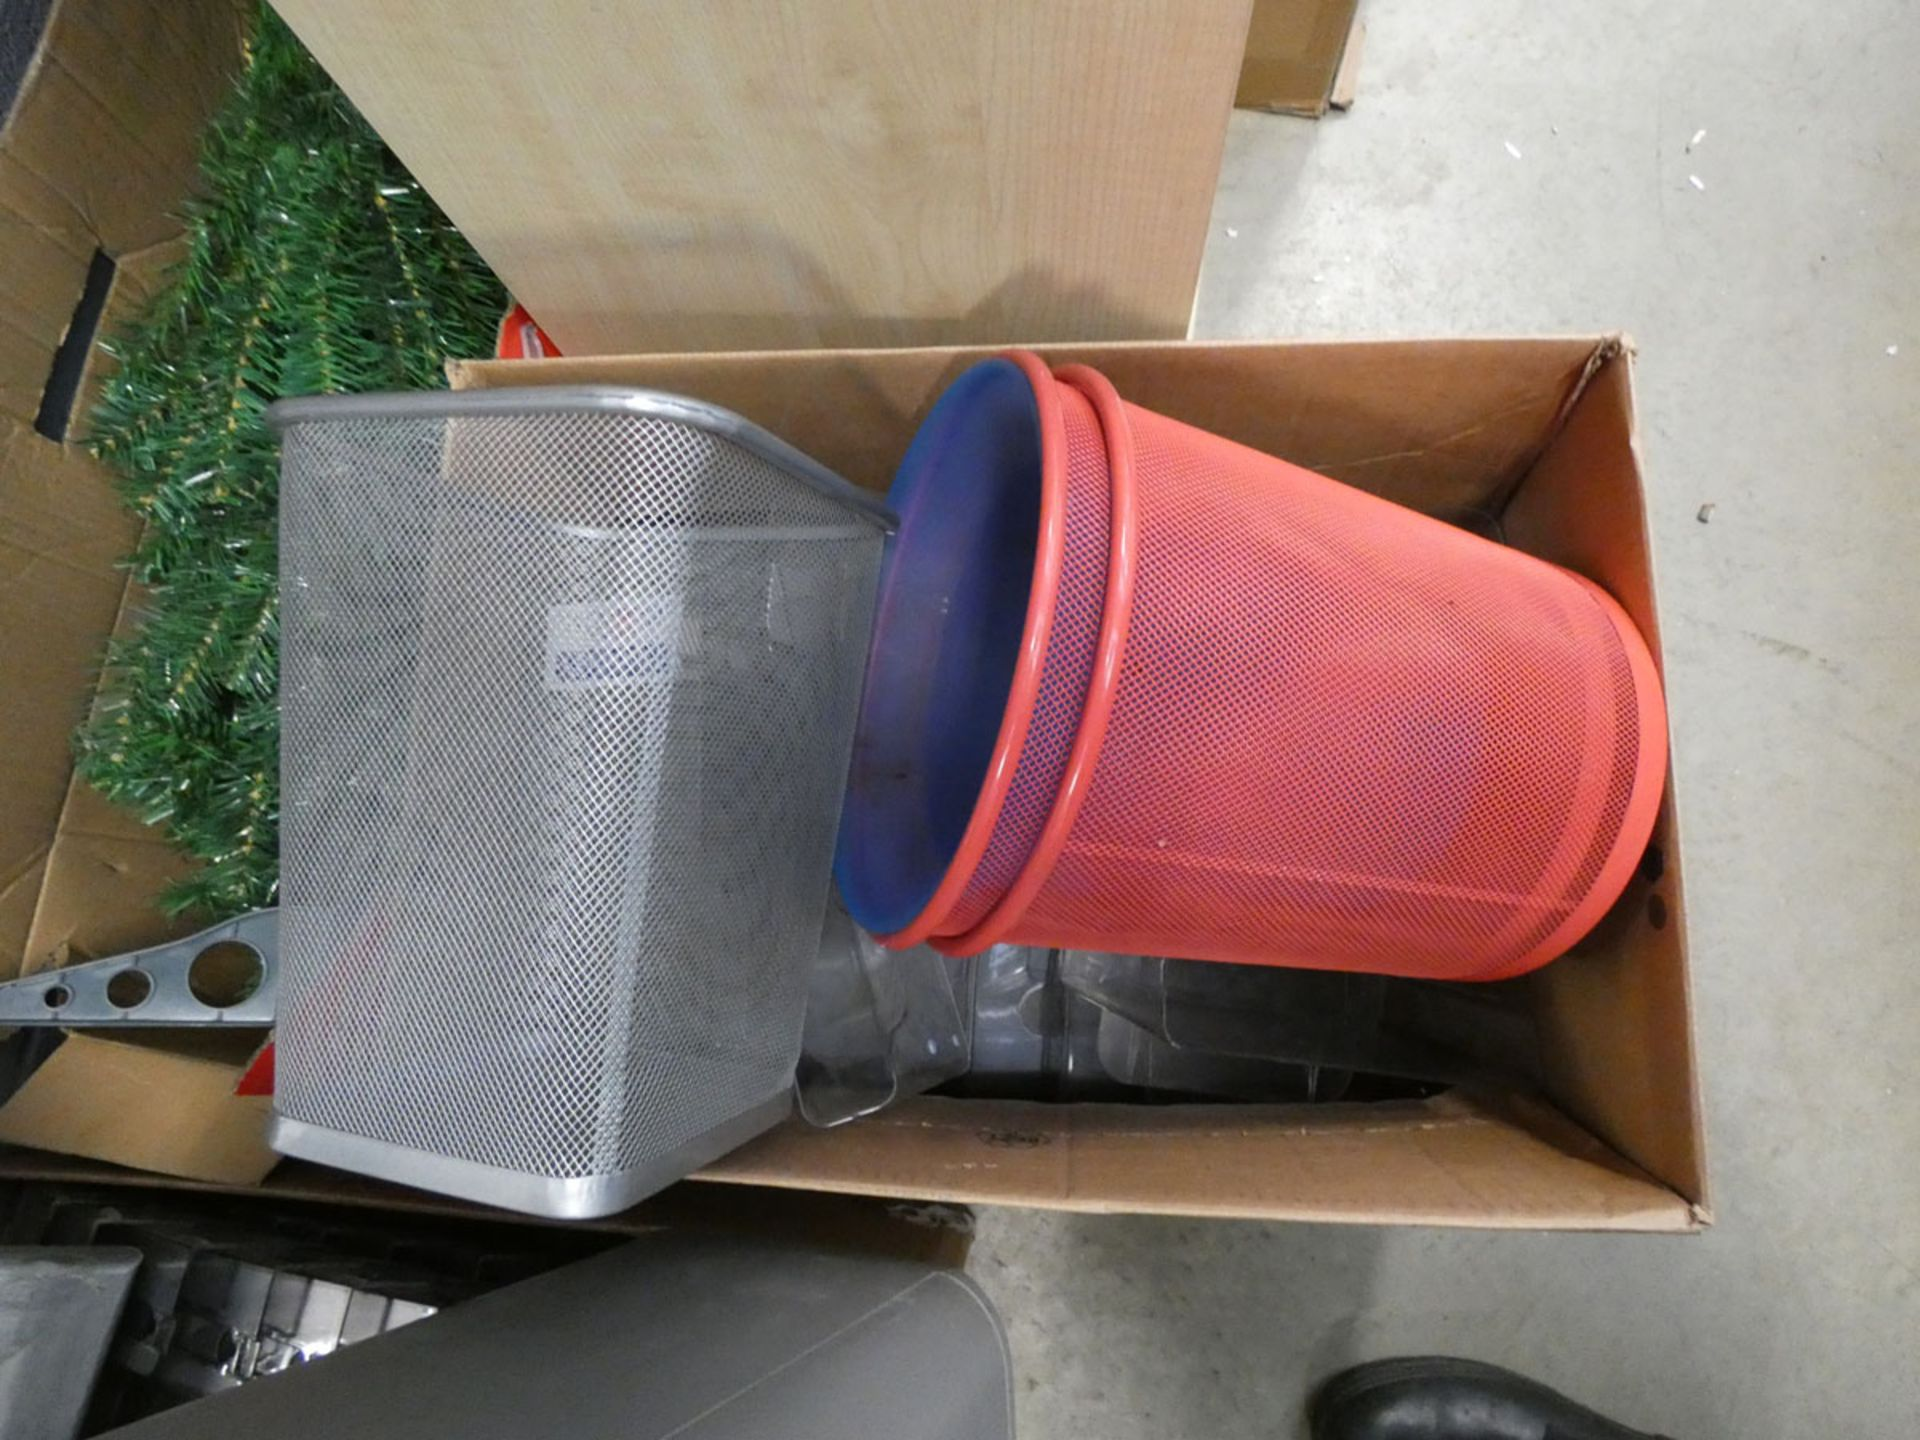 Assorted items to include paper shredder, file tray, Christmas tree, waste bins, and mirror - Image 2 of 5